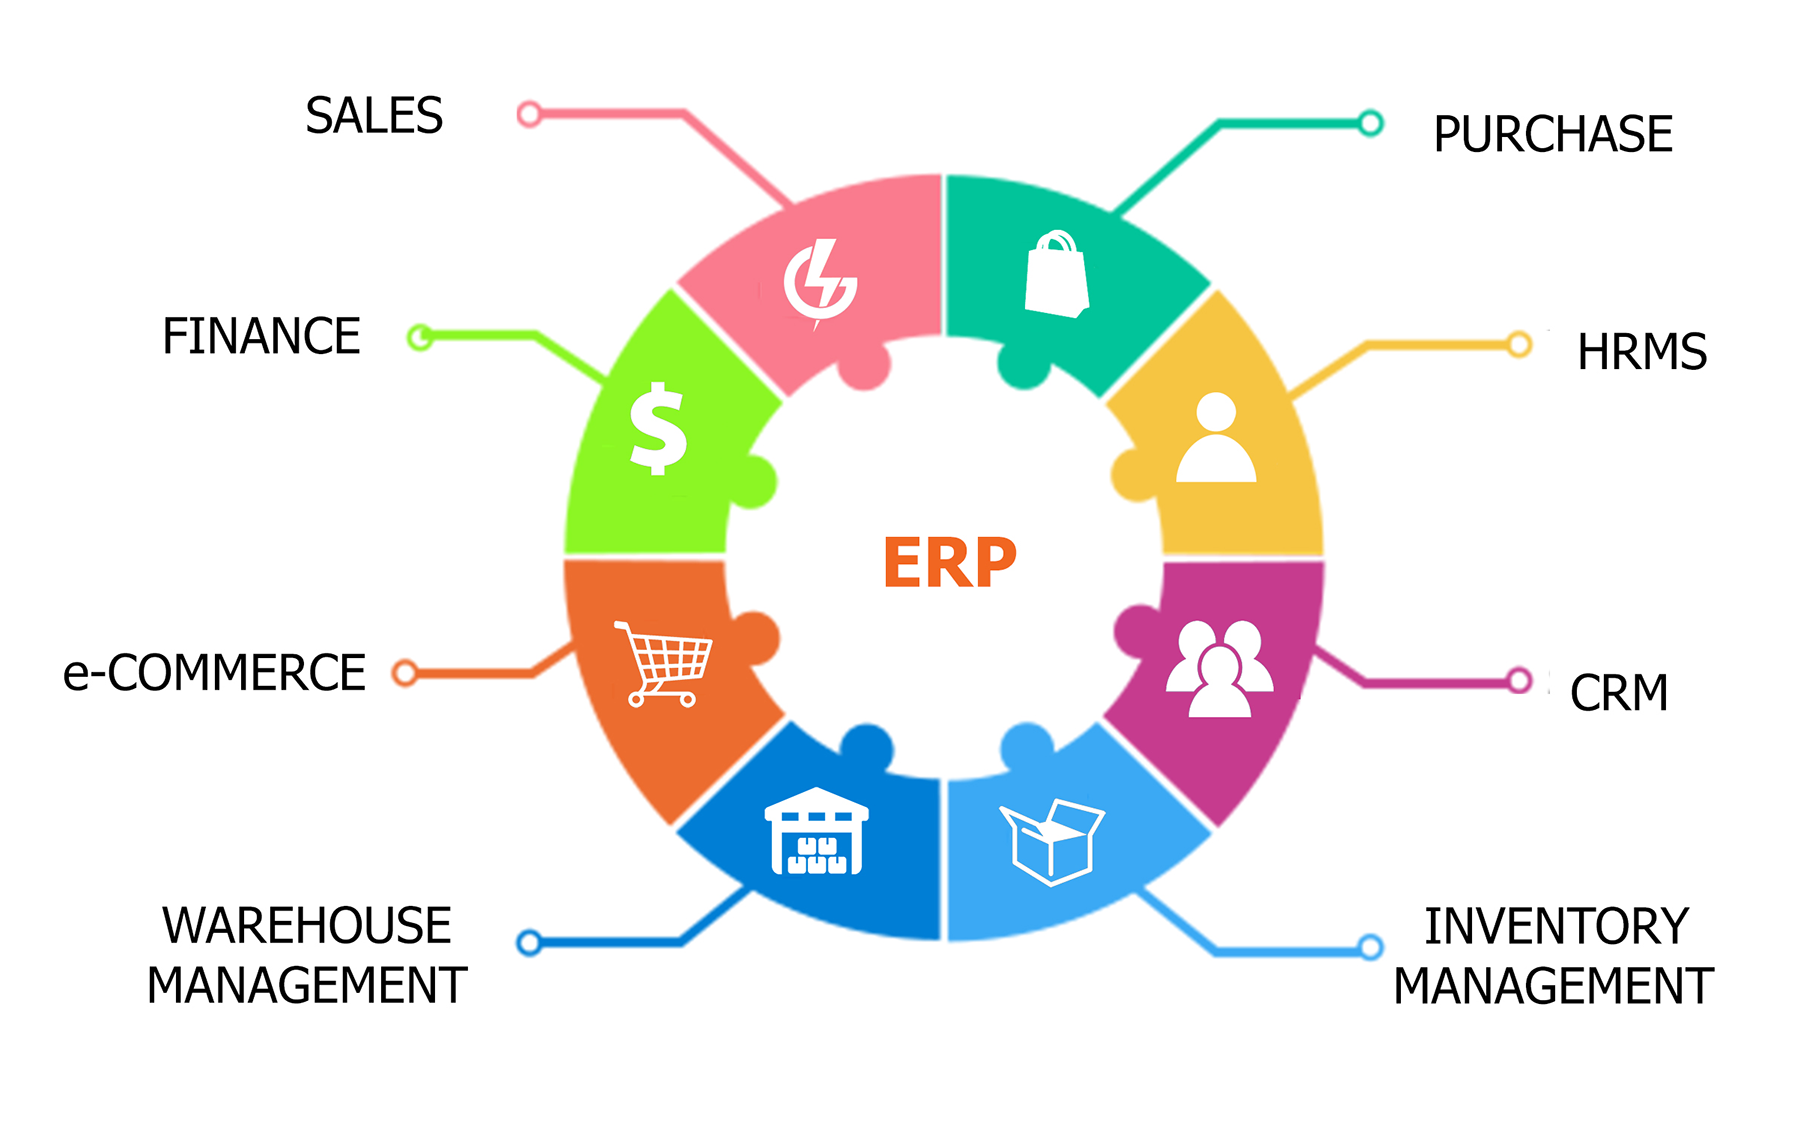 Cost saving process in ERP software development